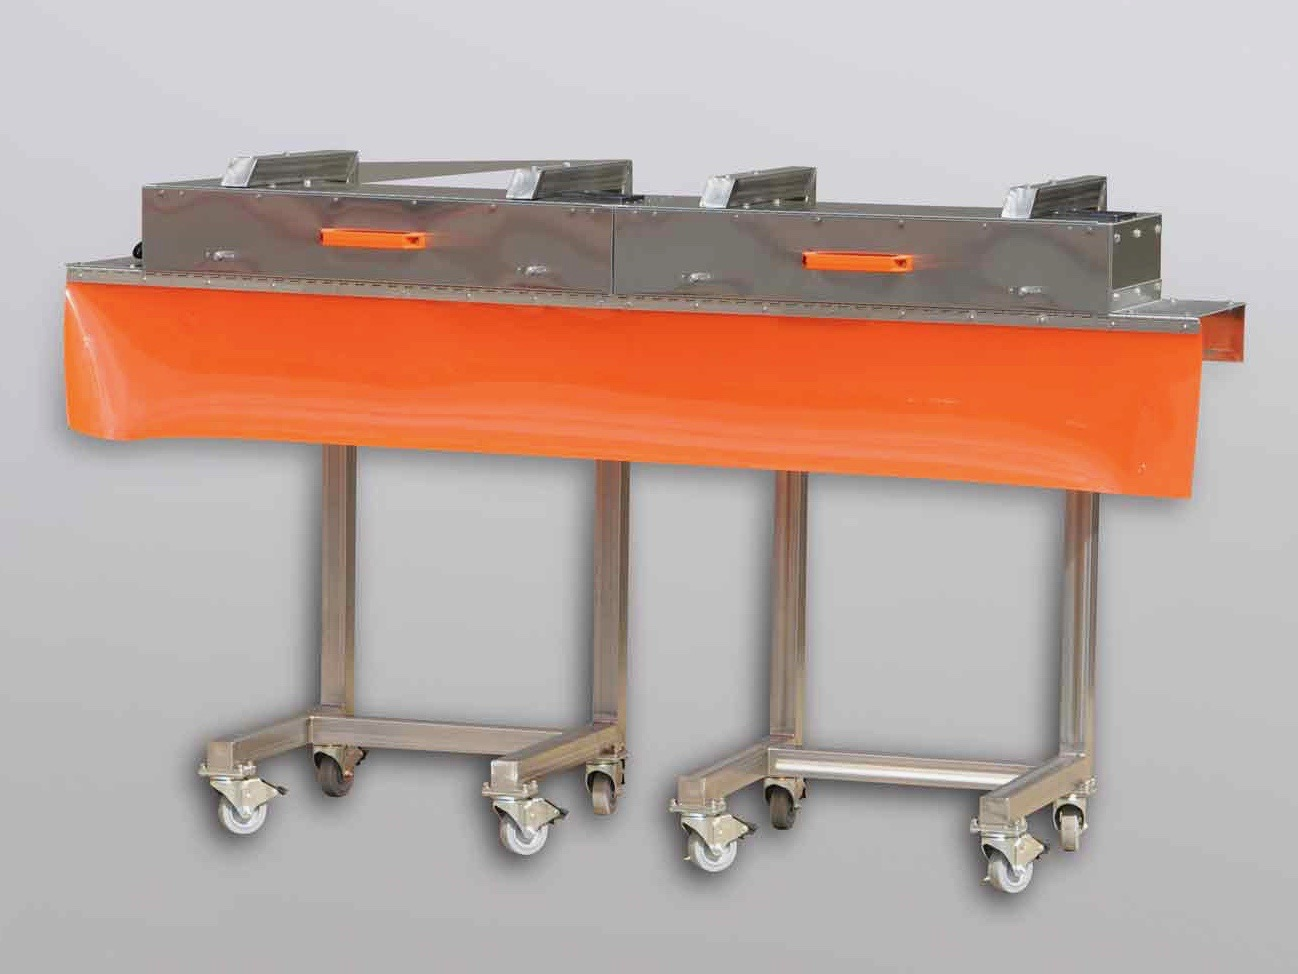 Mobile Conveyor Fixture for Pharmaceutical Packaging